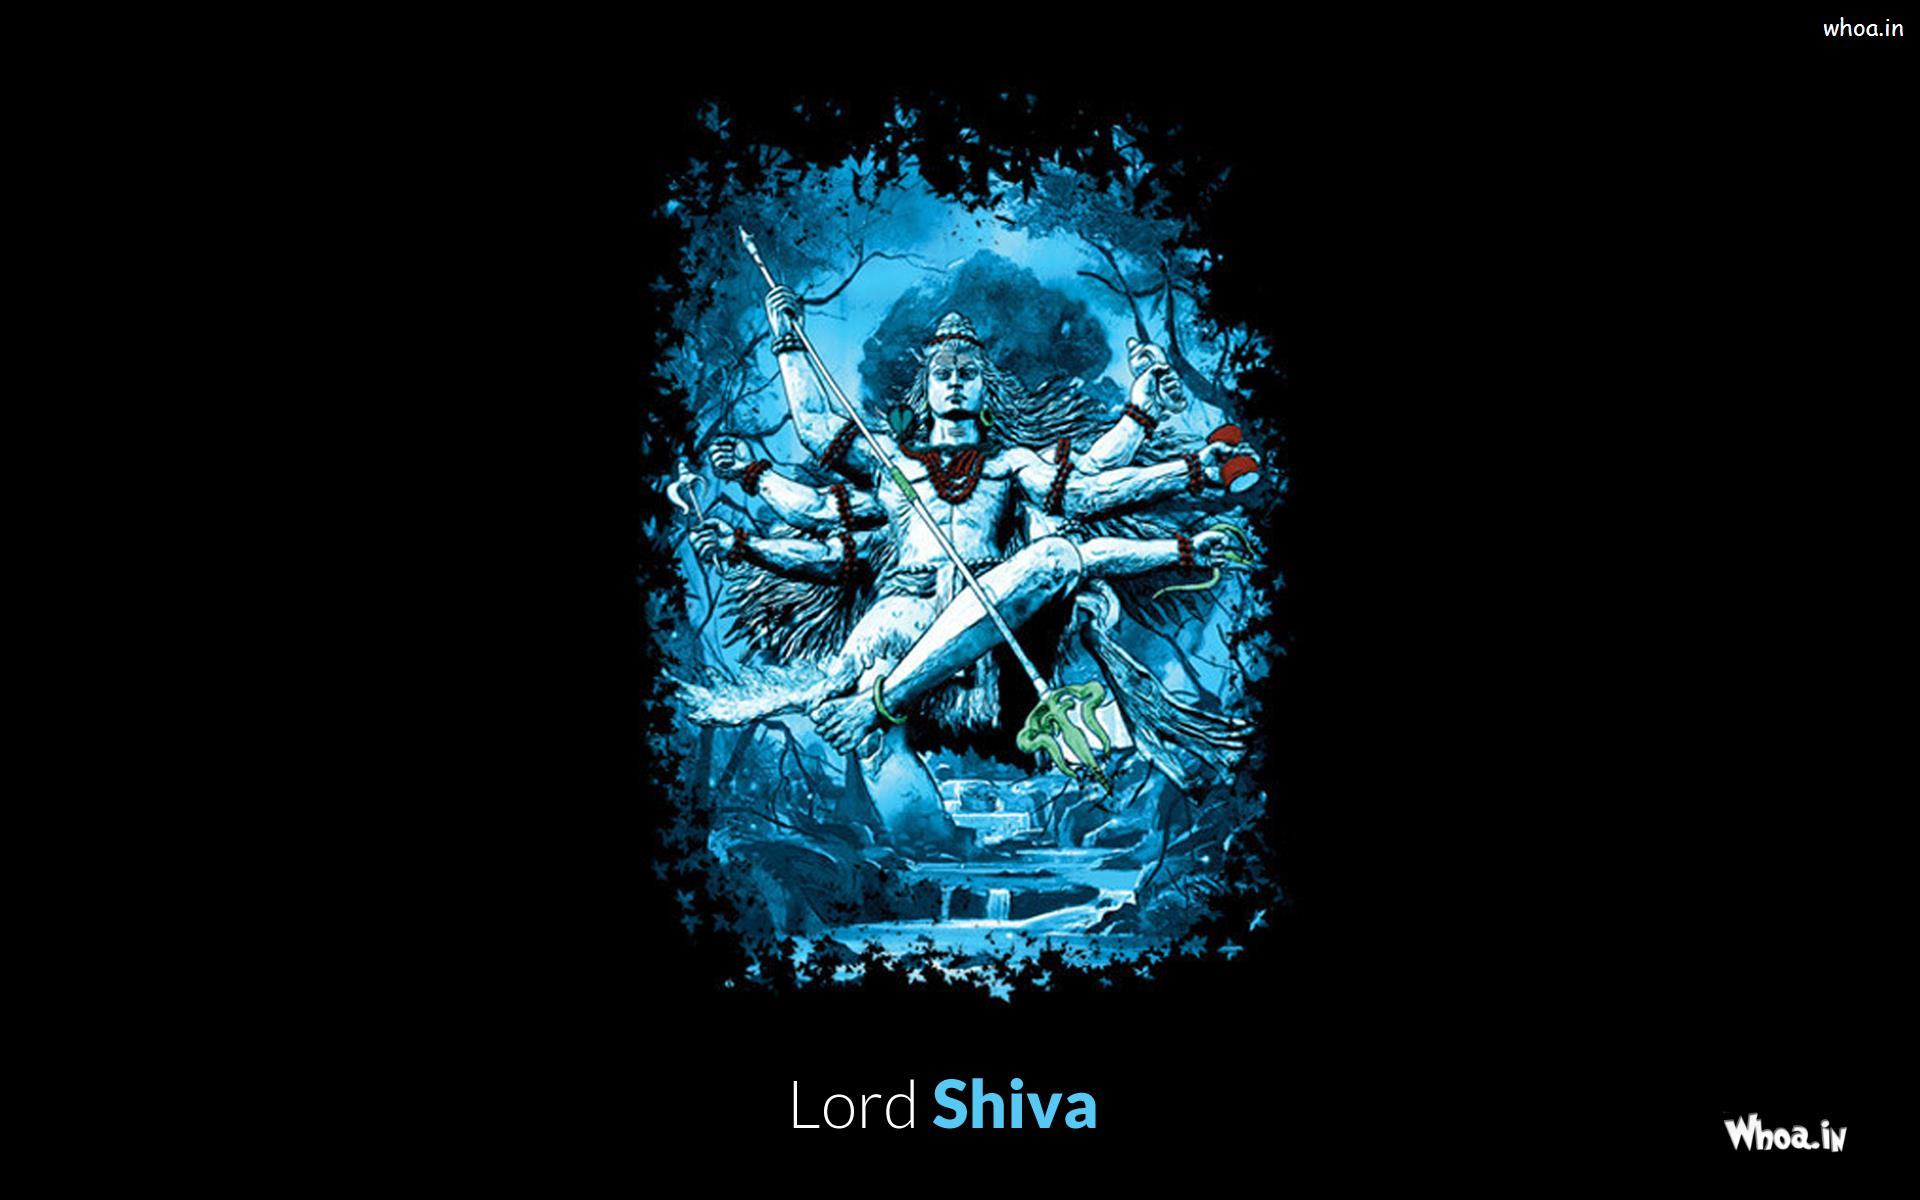 Great Wallpaper Lord Nataraja - lord-shiva-nataraj-hd-wallpaper-with-dark-background  Picture_40253.in/download/lord-shiva-nataraj-hd-wallpaper-with-dark-background